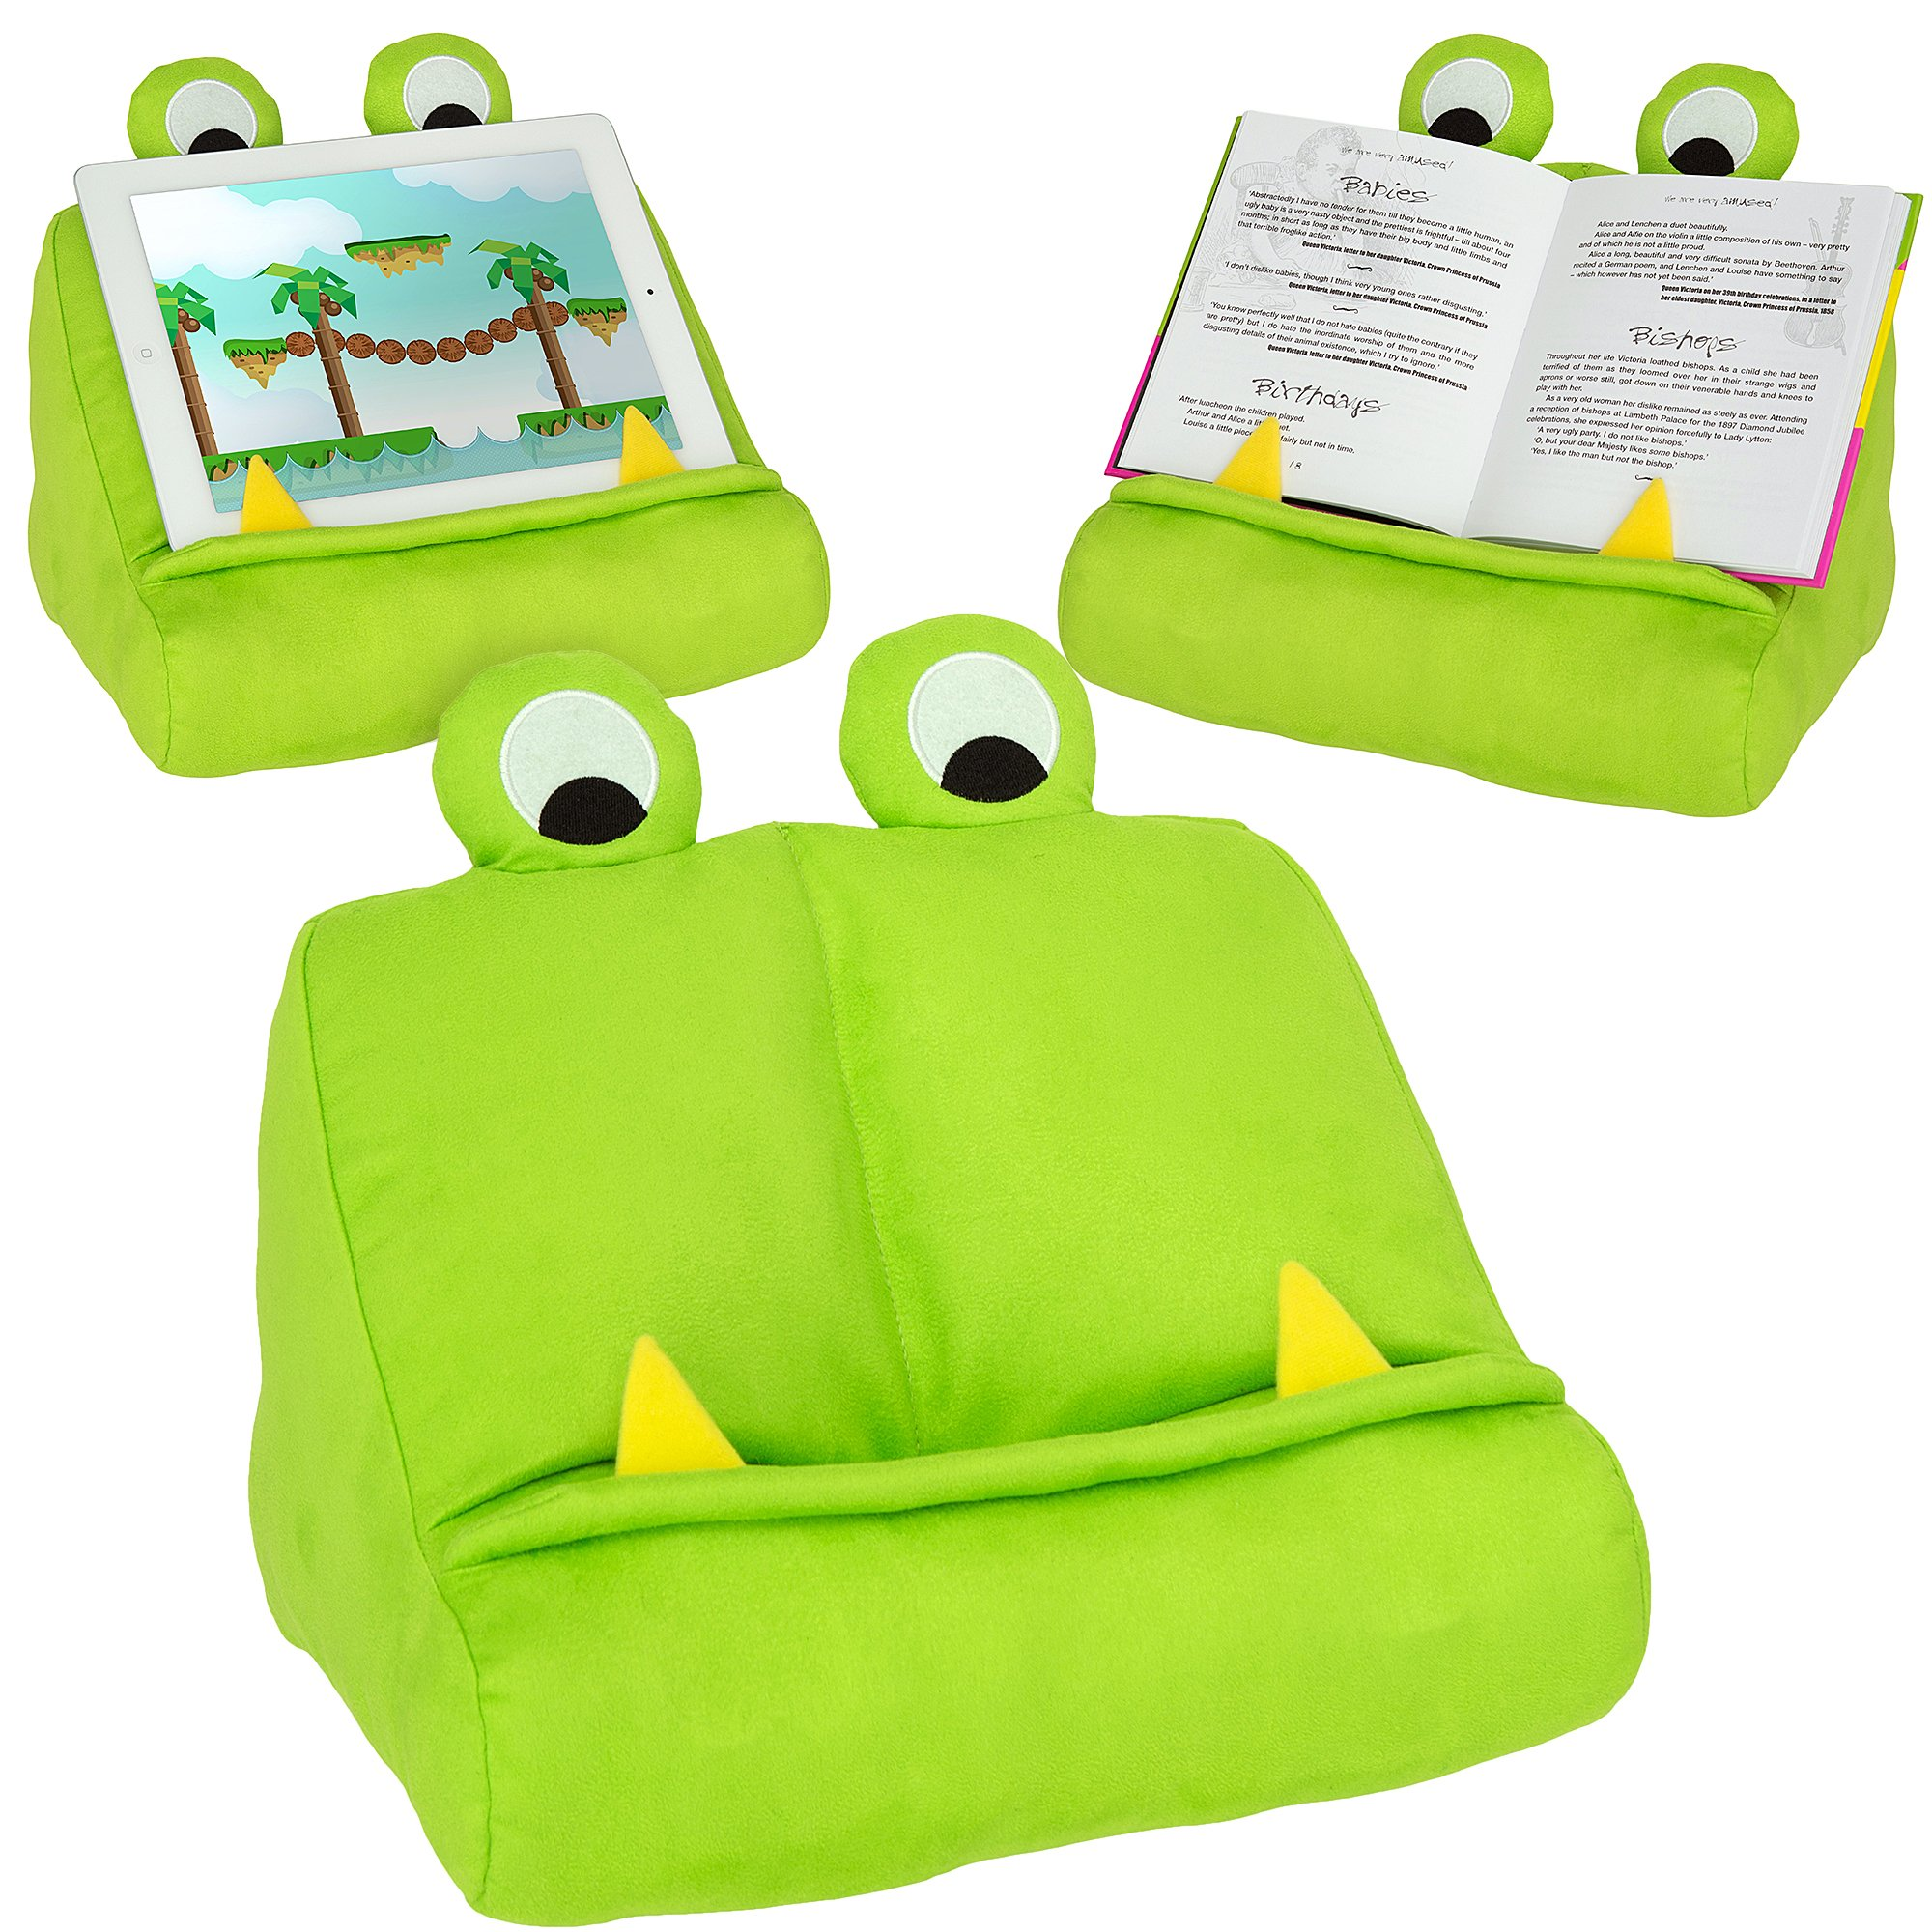 Kids iPad Stand & Book Holder. Tablet Rest for Lap & Reading in Bed for Children of All Ages – Green